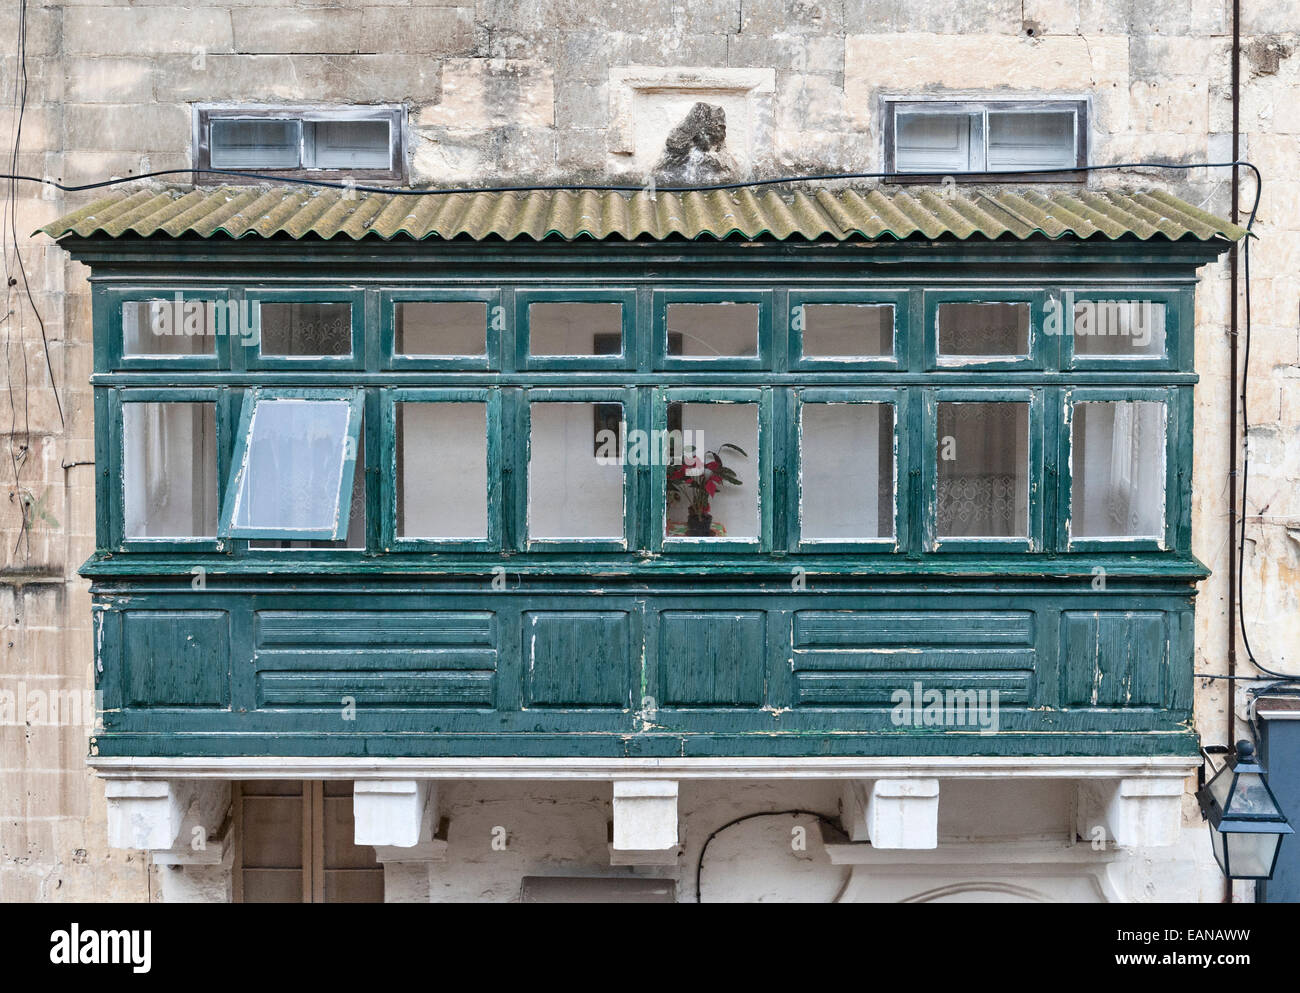 Valletta, Malta. A traditional enclosed wooden balcony (gallarija) on an old house - Stock Image